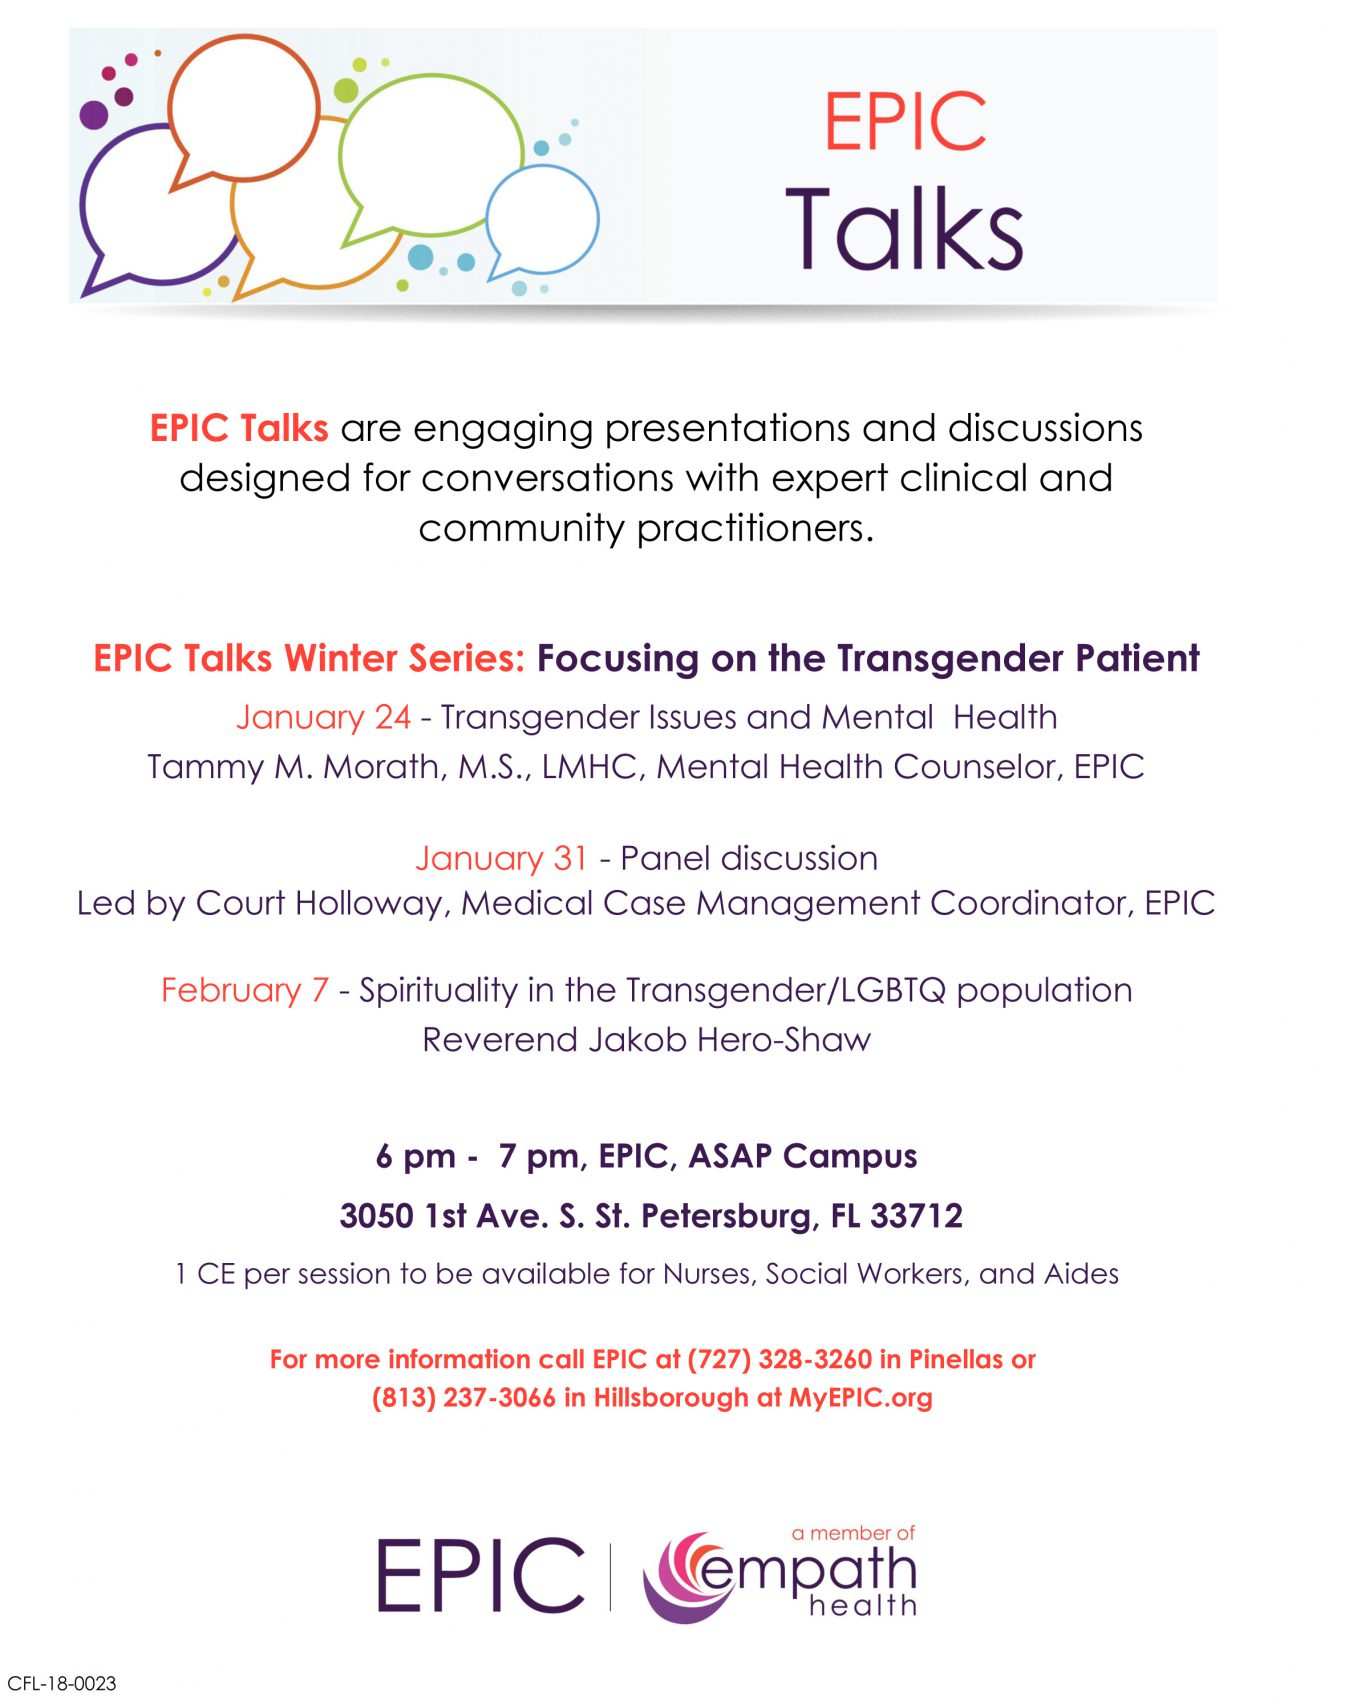 Focusing on the Transgender Patient - A Panel Discussion @ EPIC (Empath Partners In Care) ASAP Campus | Saint Petersburg | Florida | United States